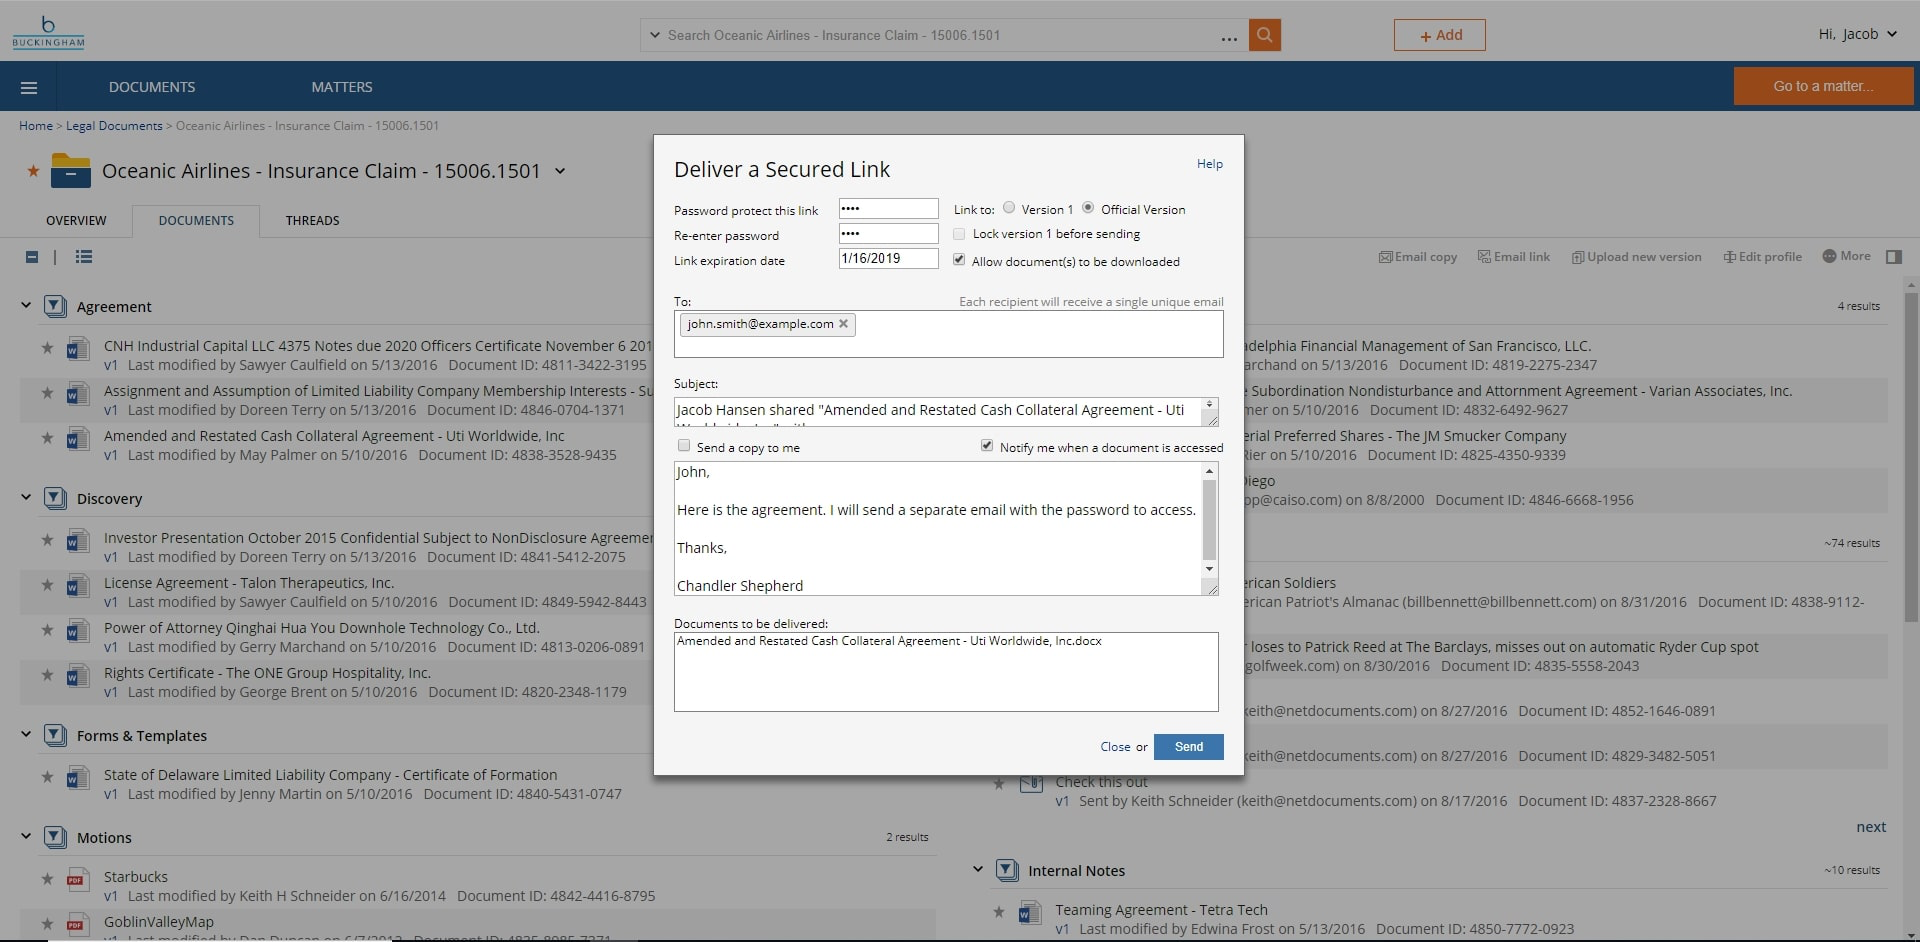 NetDocuments, we provide an alternative to emailing client material back and forth by using our secured links. This is one of many examples of how to securely send a document using our platform: